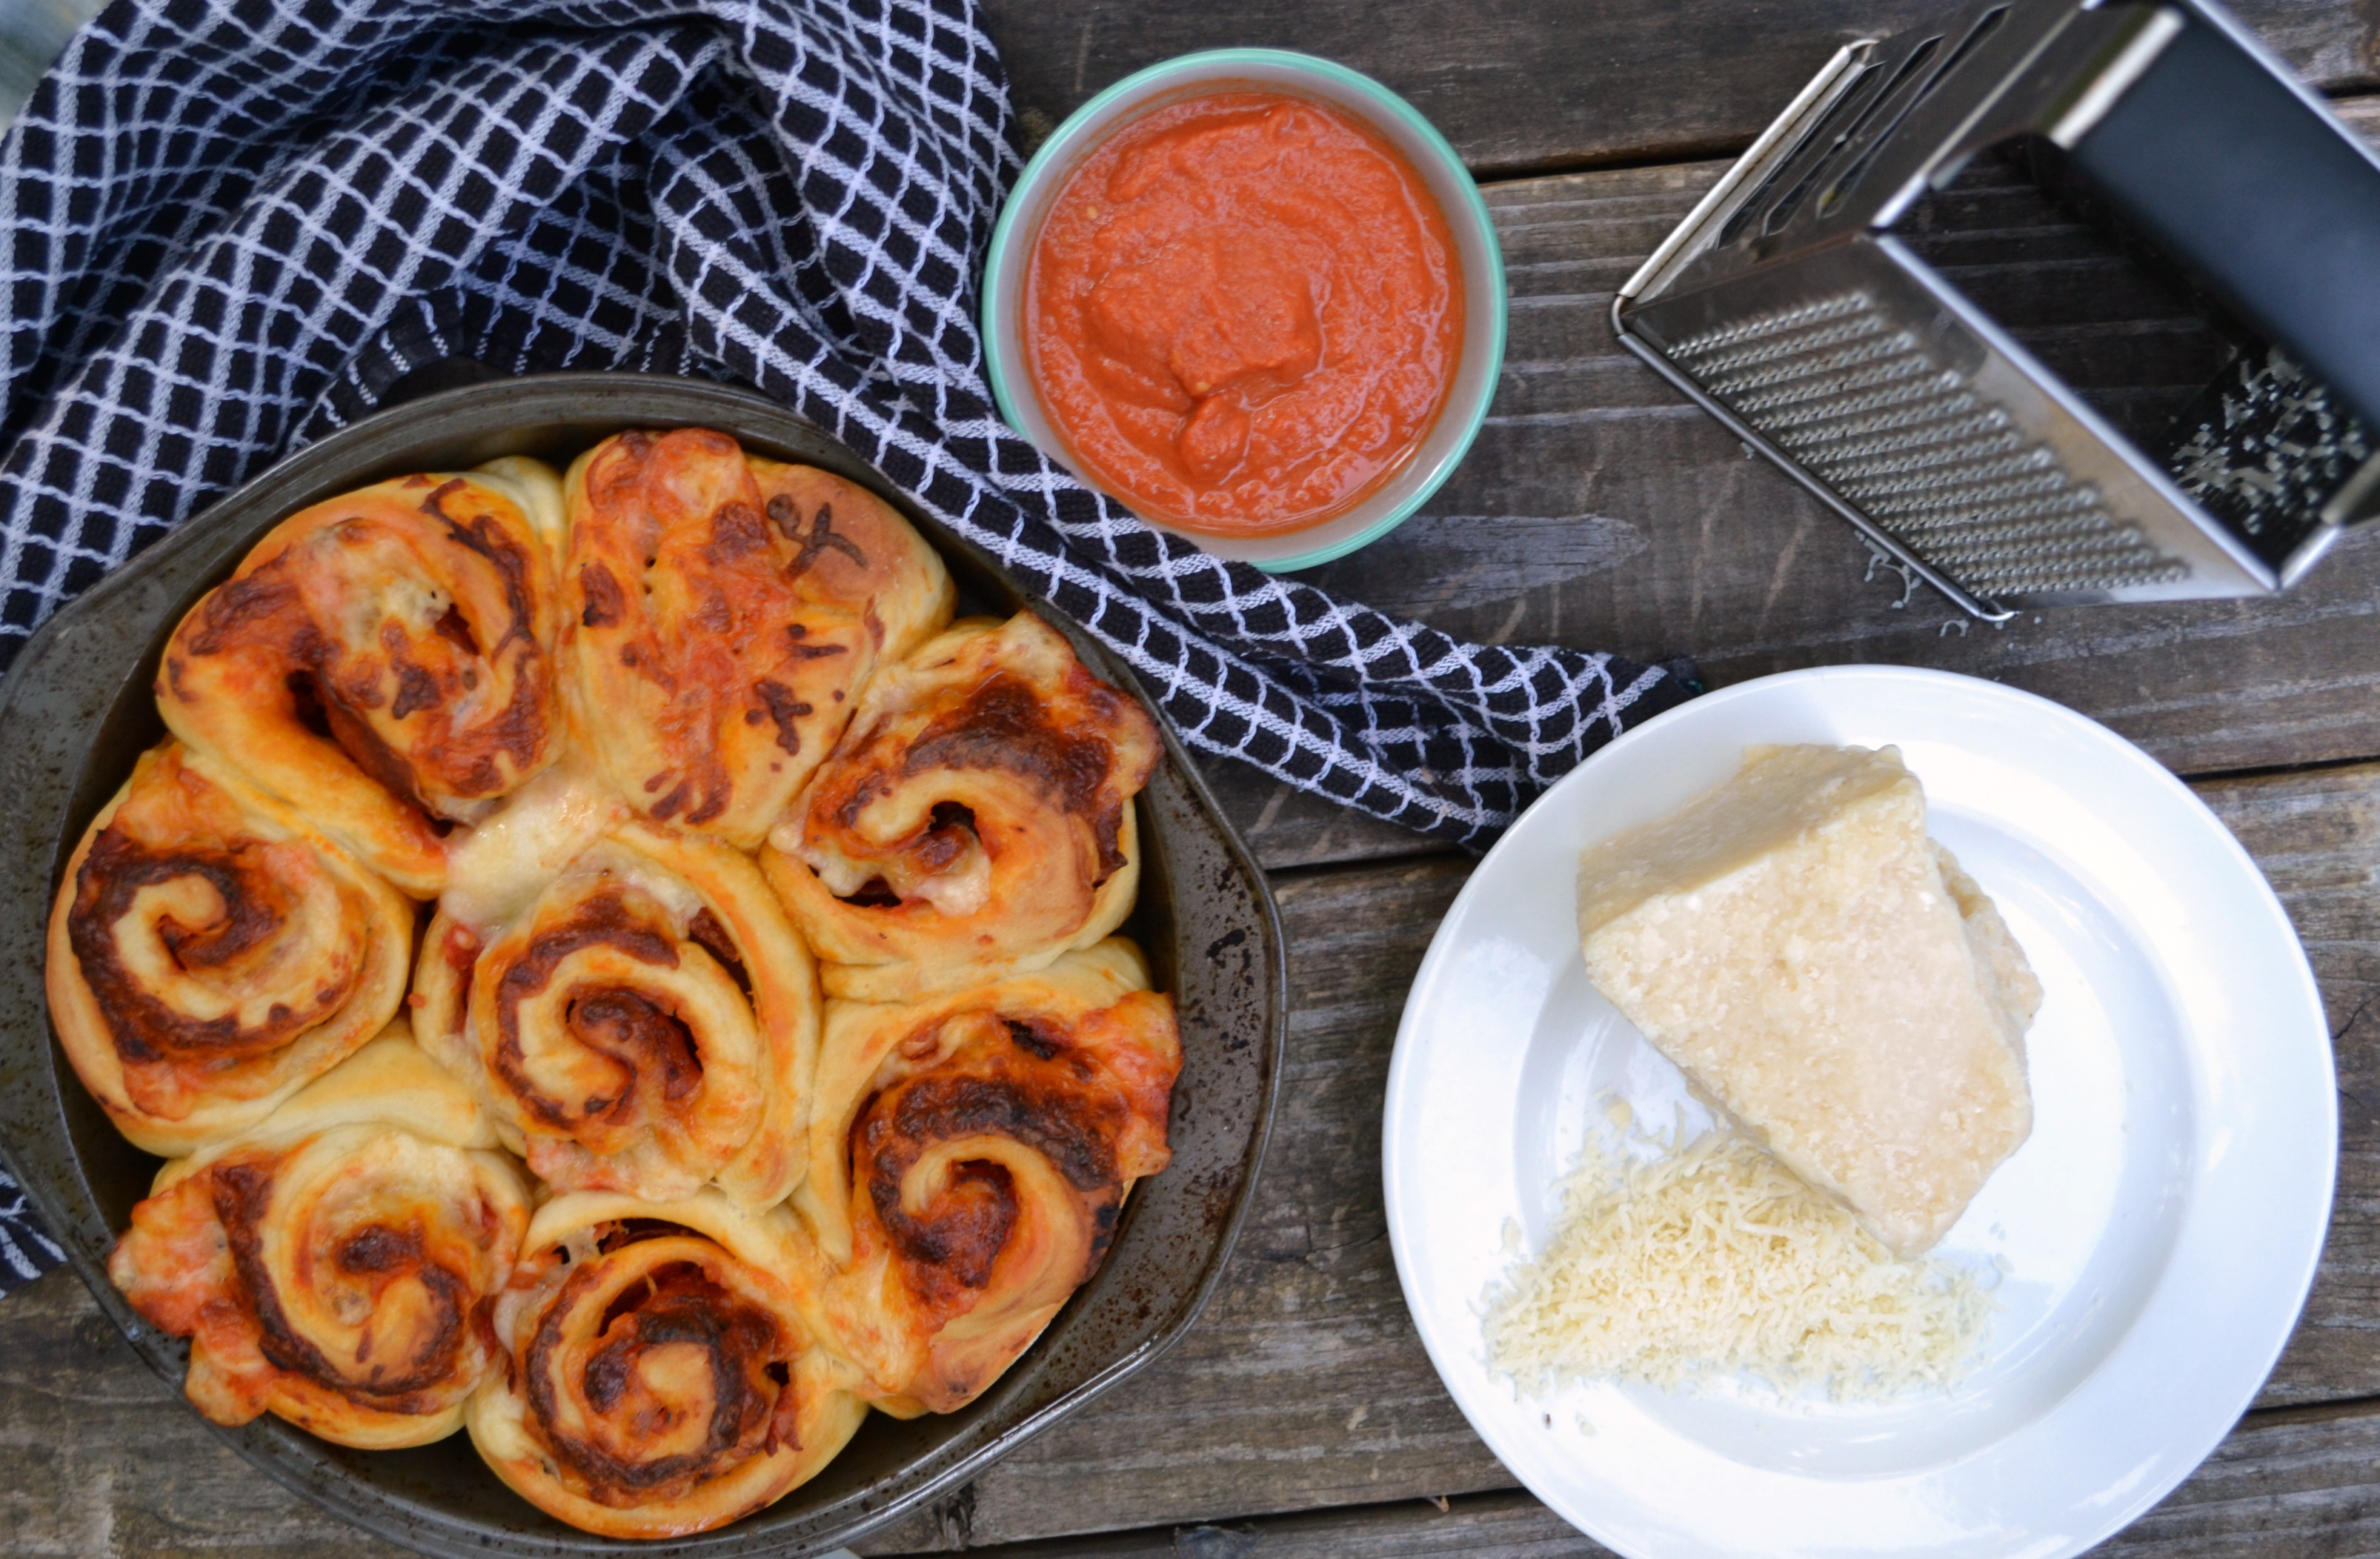 a photo of pepperoni pizza rollips on a wooden table with a blue abd white dish towel and a cup of red sauce